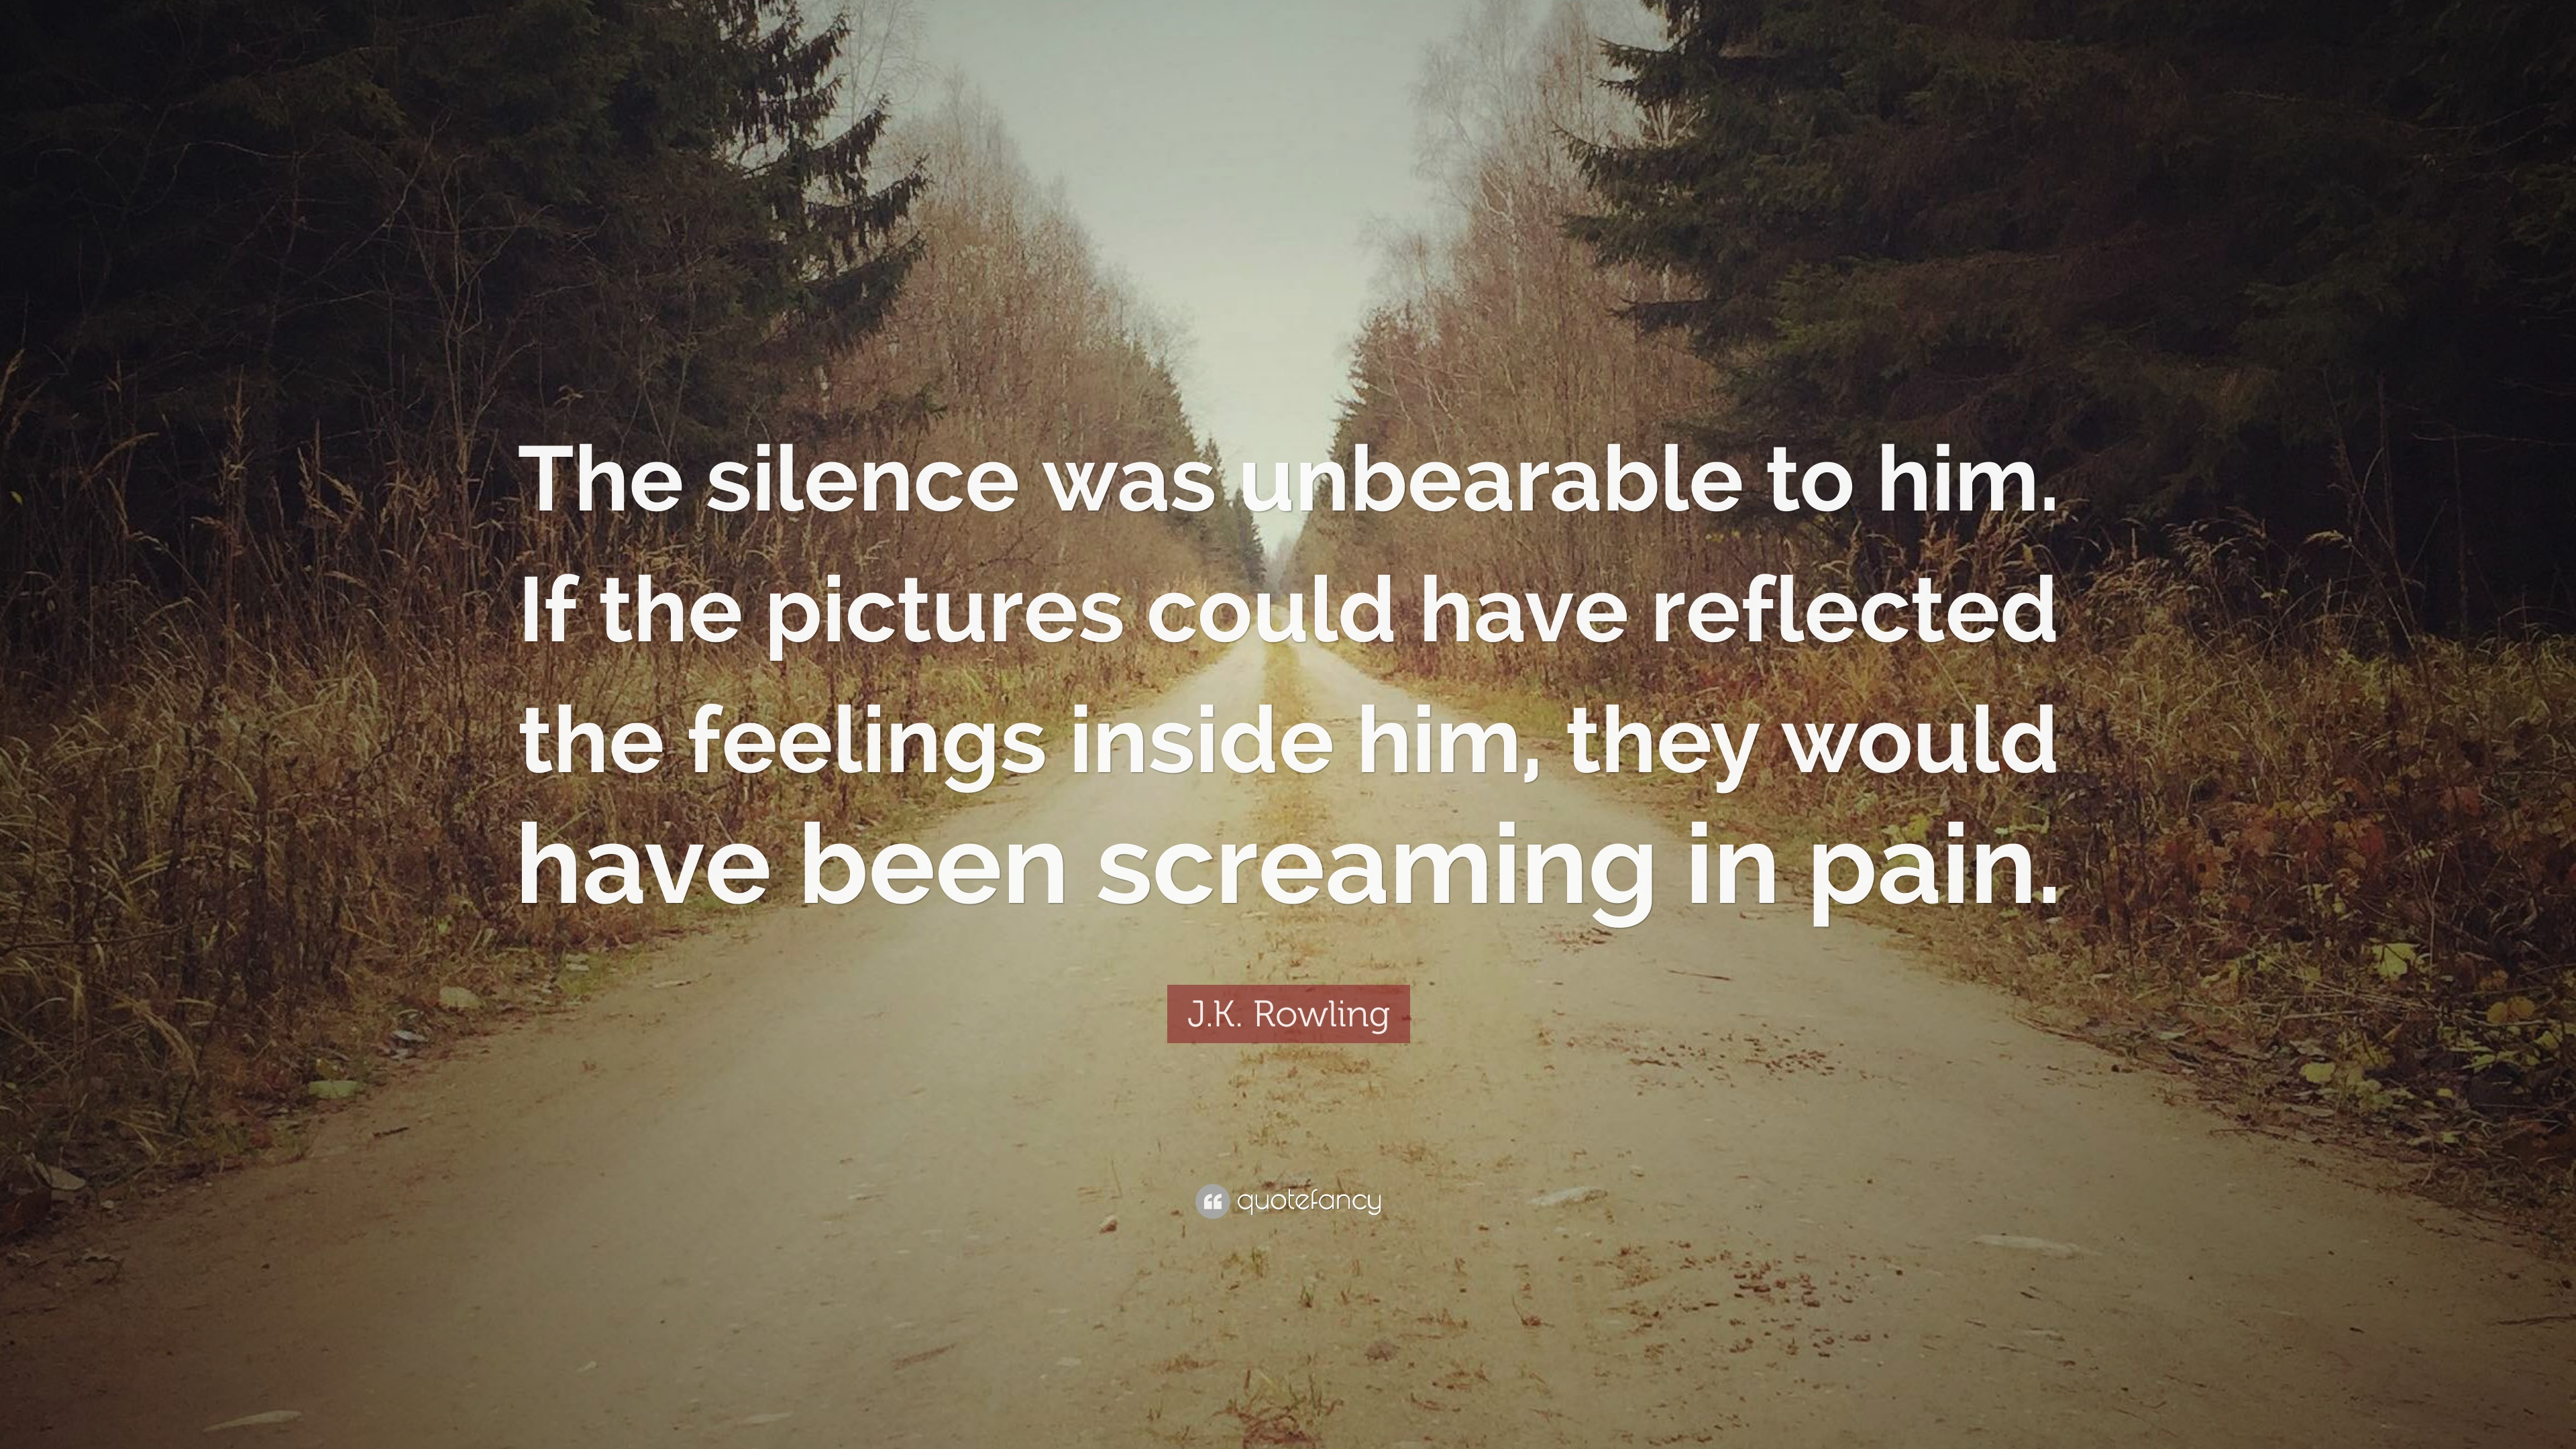 Jk Rowling Quote The Silence Was Unbearable To Him If The